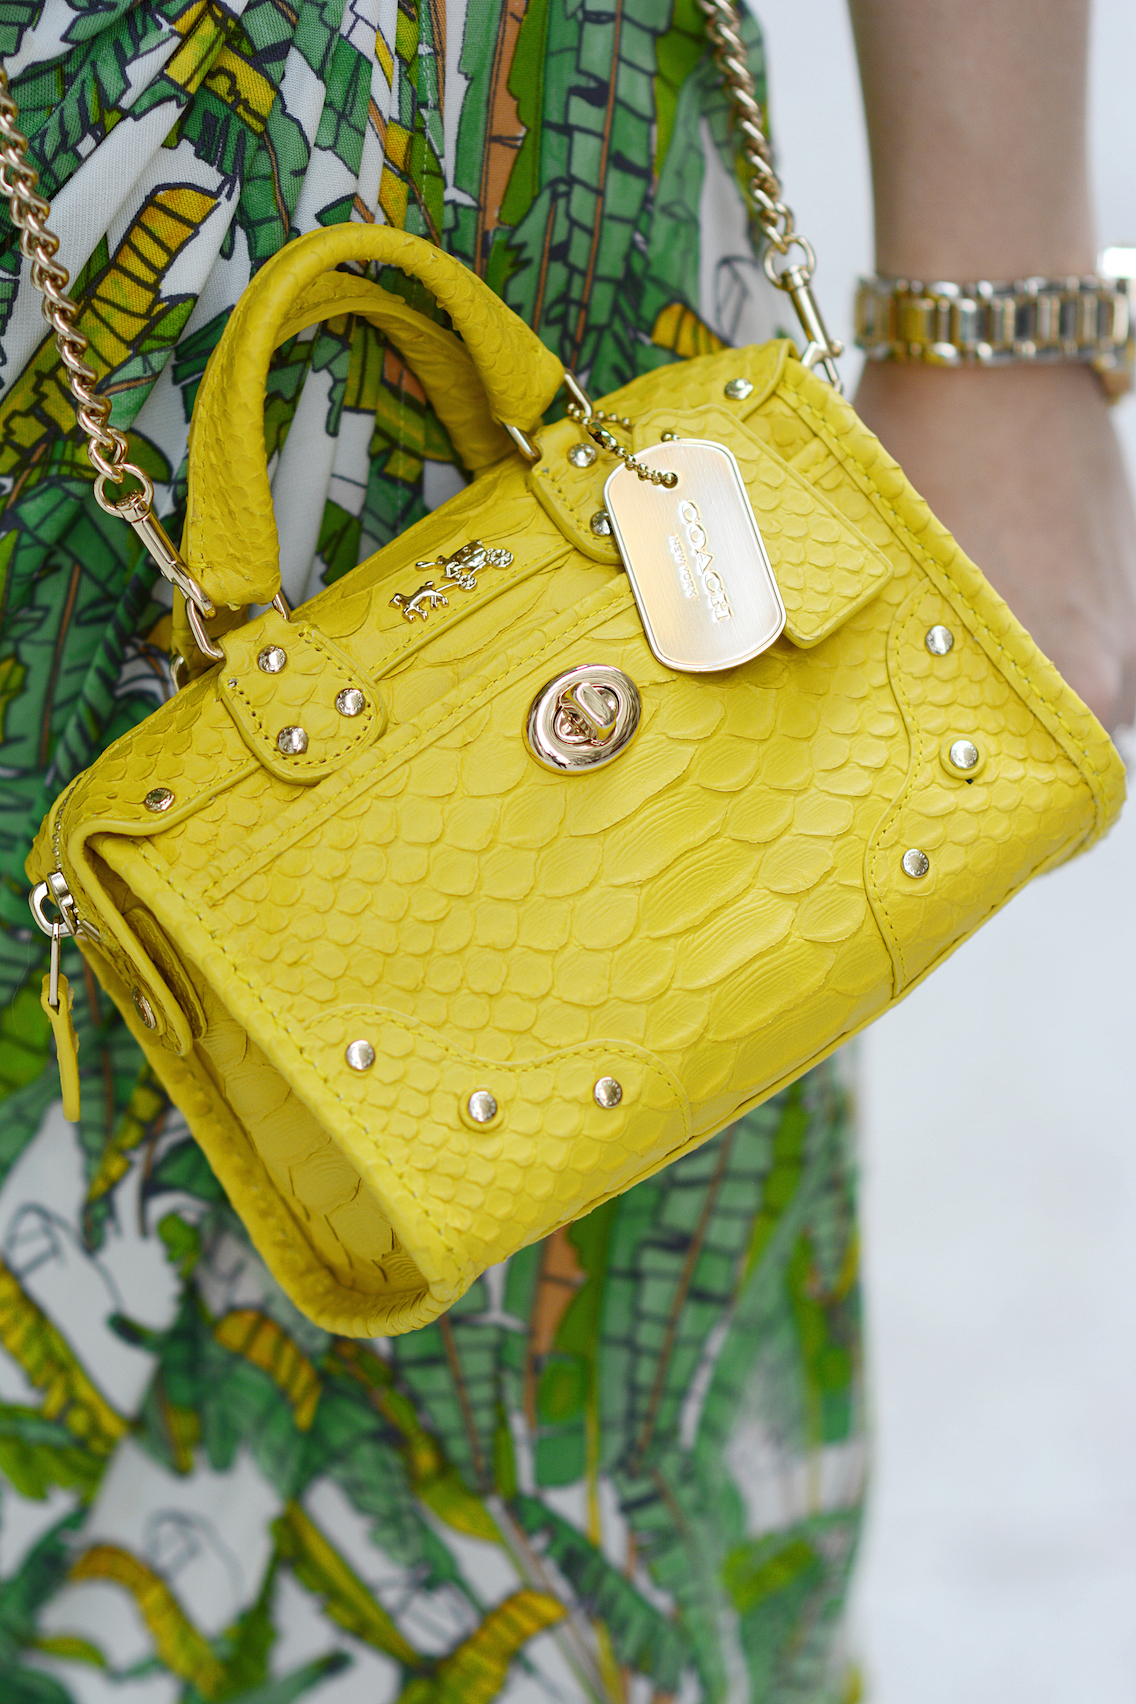 Coach Rhyder 18 crossbody bag in python embossed yellow leather 4